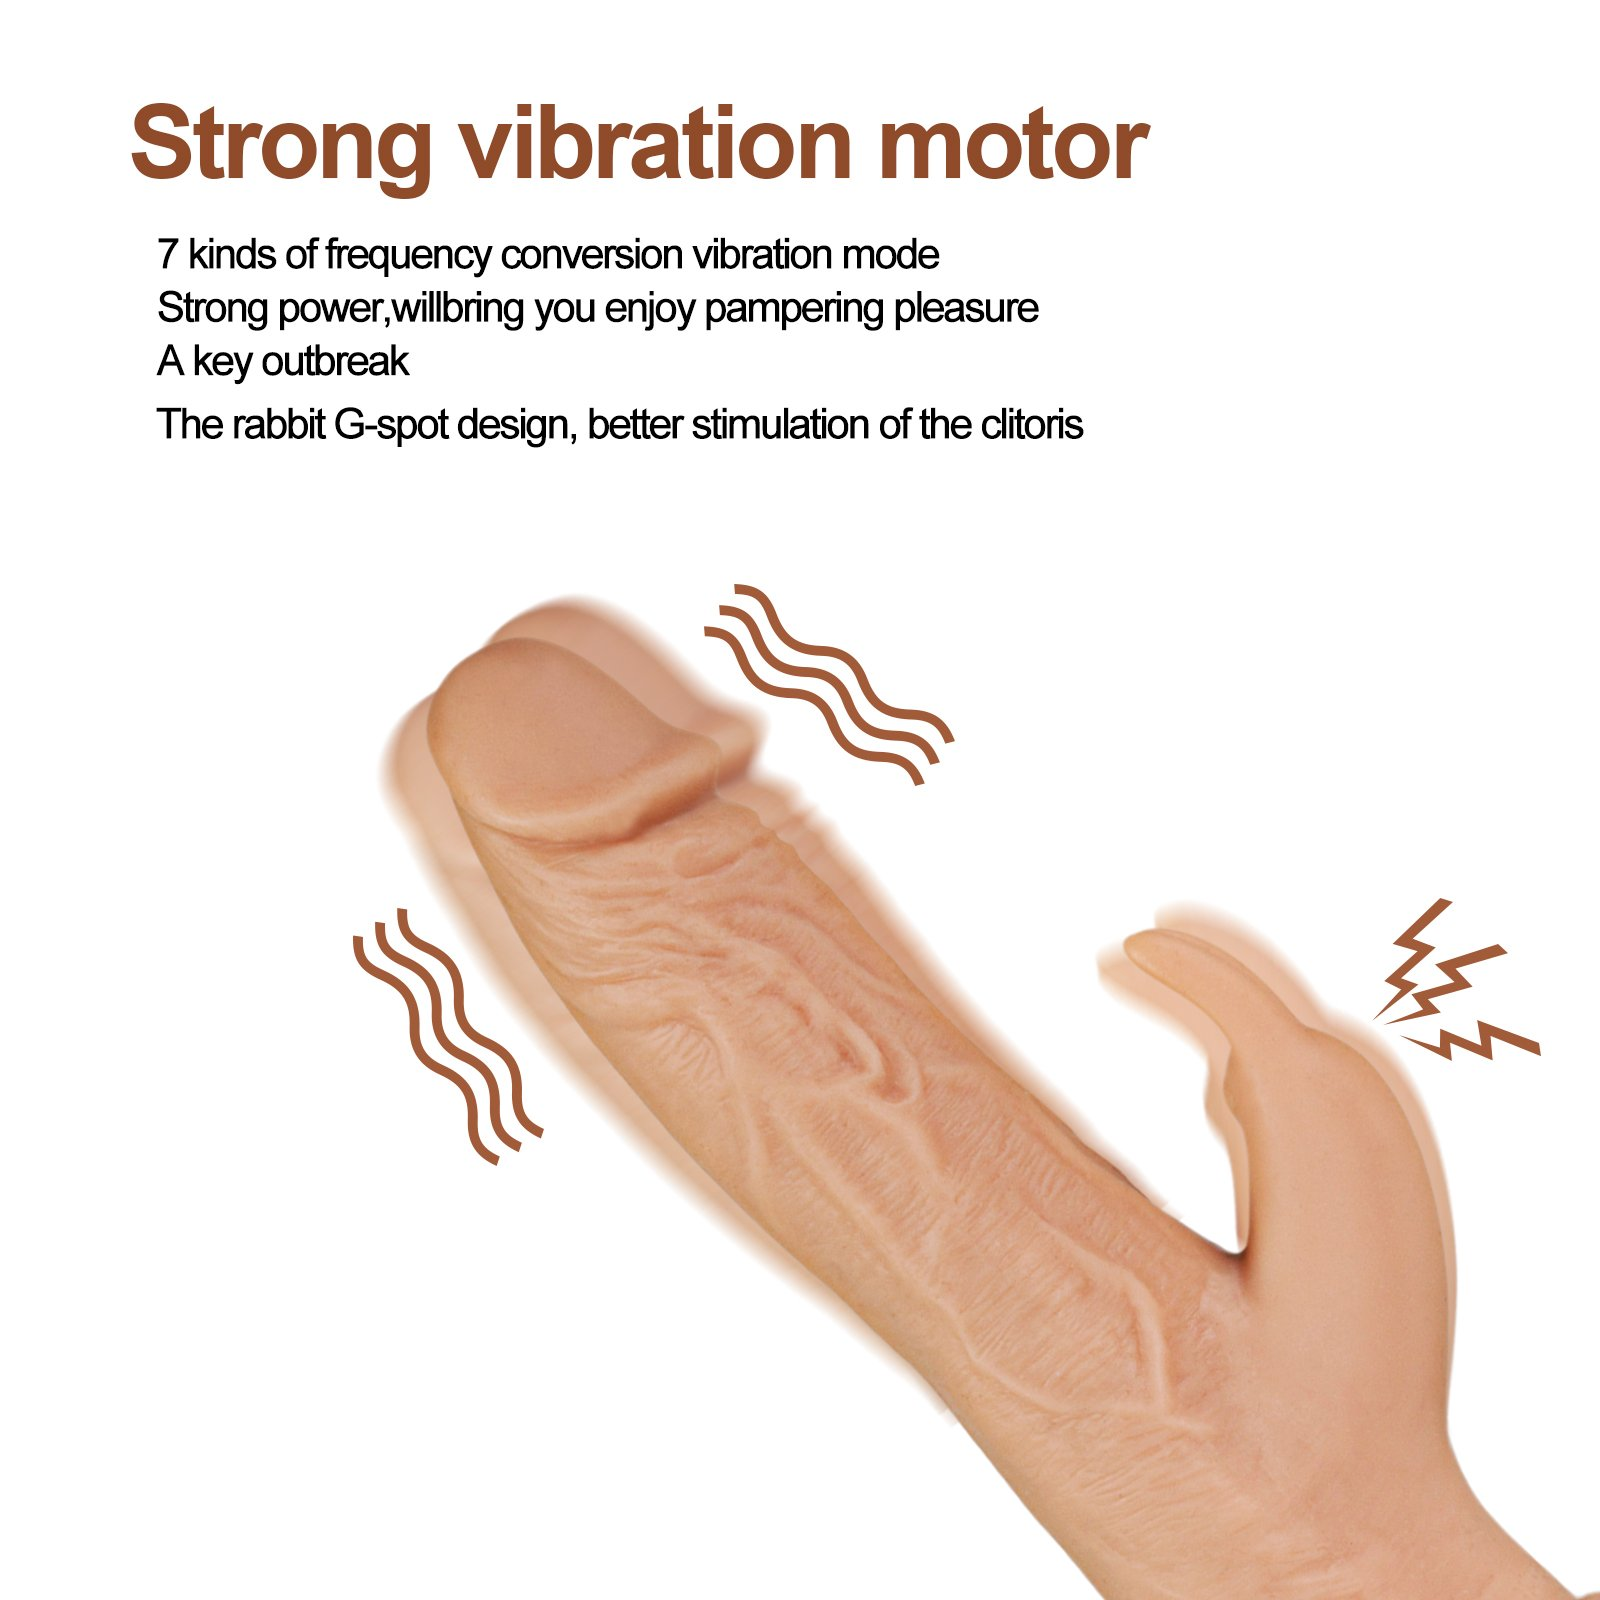 Riodong Dildo Vibrator, Powerful Vibrative Stimulation for G-Spot Vagina and Clitoris, with Suction Cups on Bottom, Real Fleshcolor, 8.25 Inch